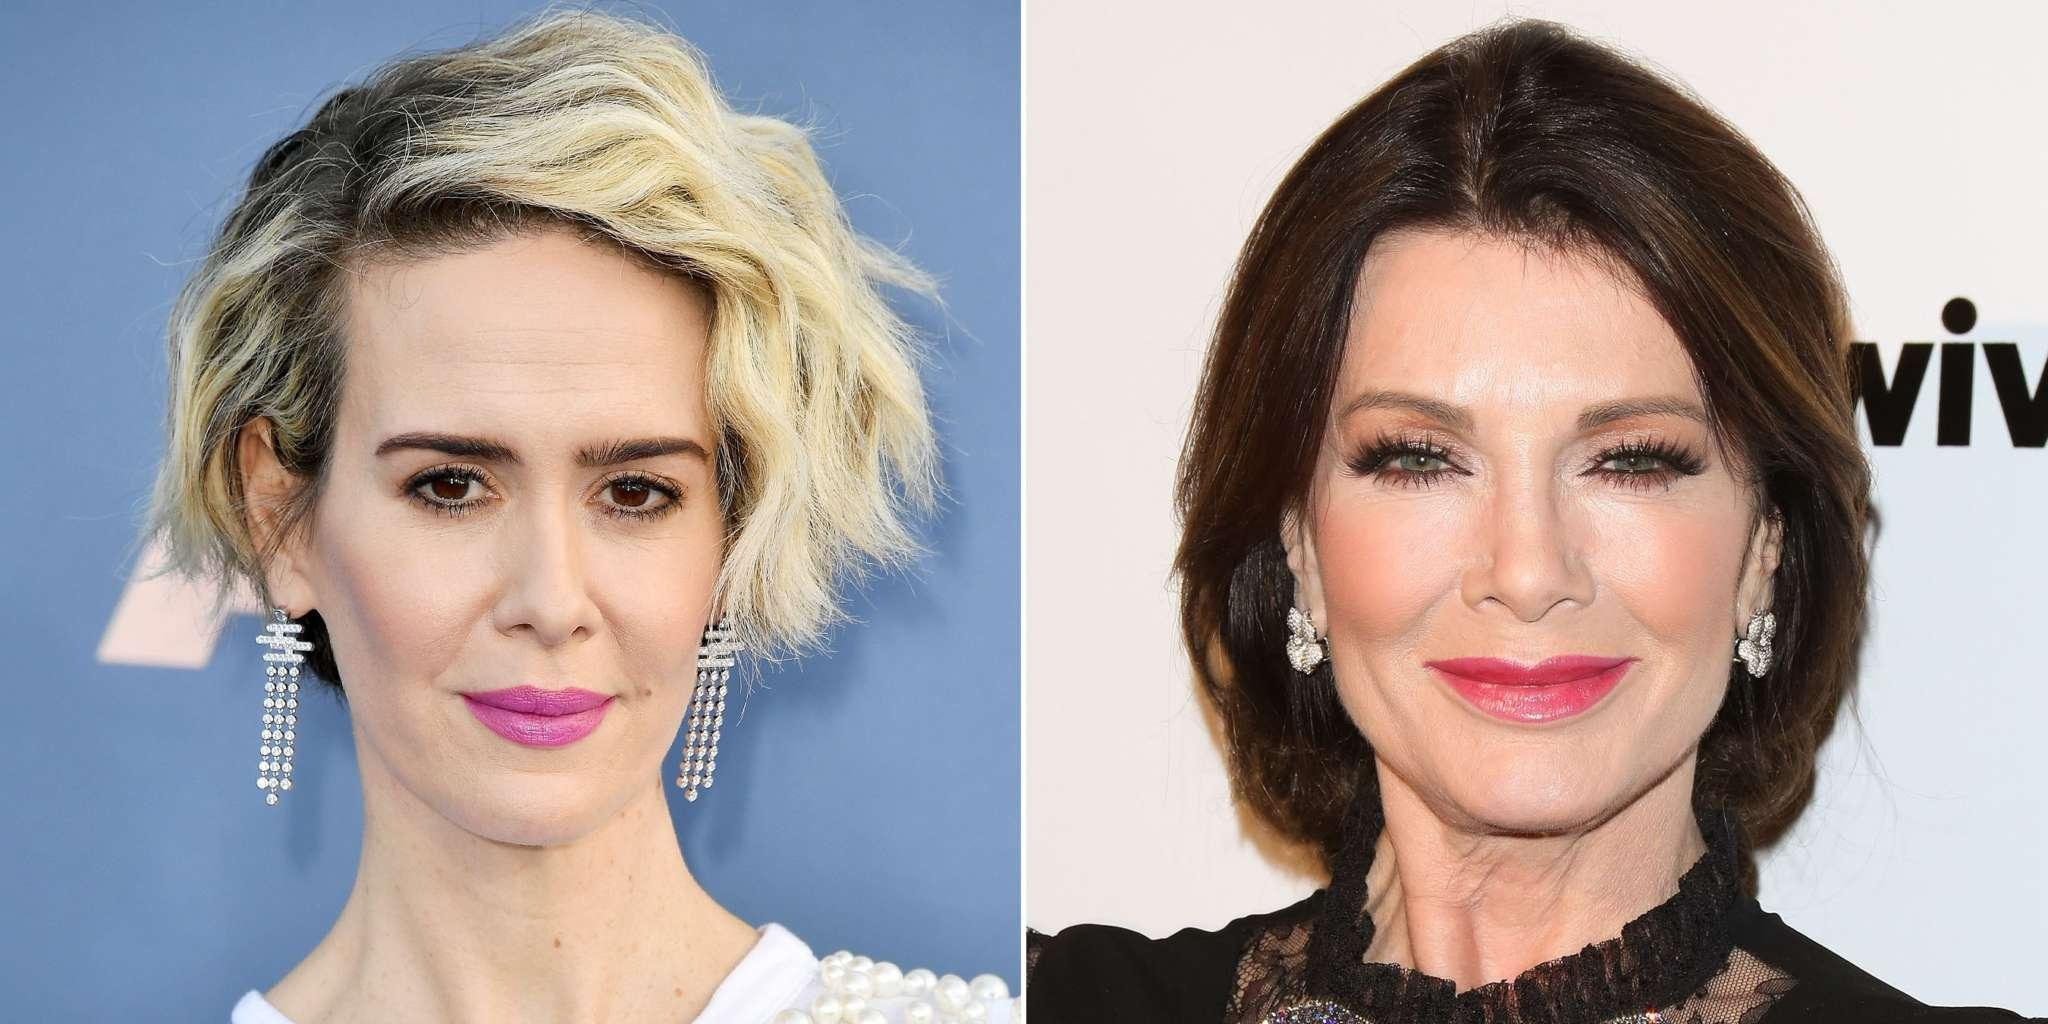 Lisa Vanderpump Poses With Sarah Paulson In Newly Surfaced Pic After She Claimed They Never Met - Fans React!